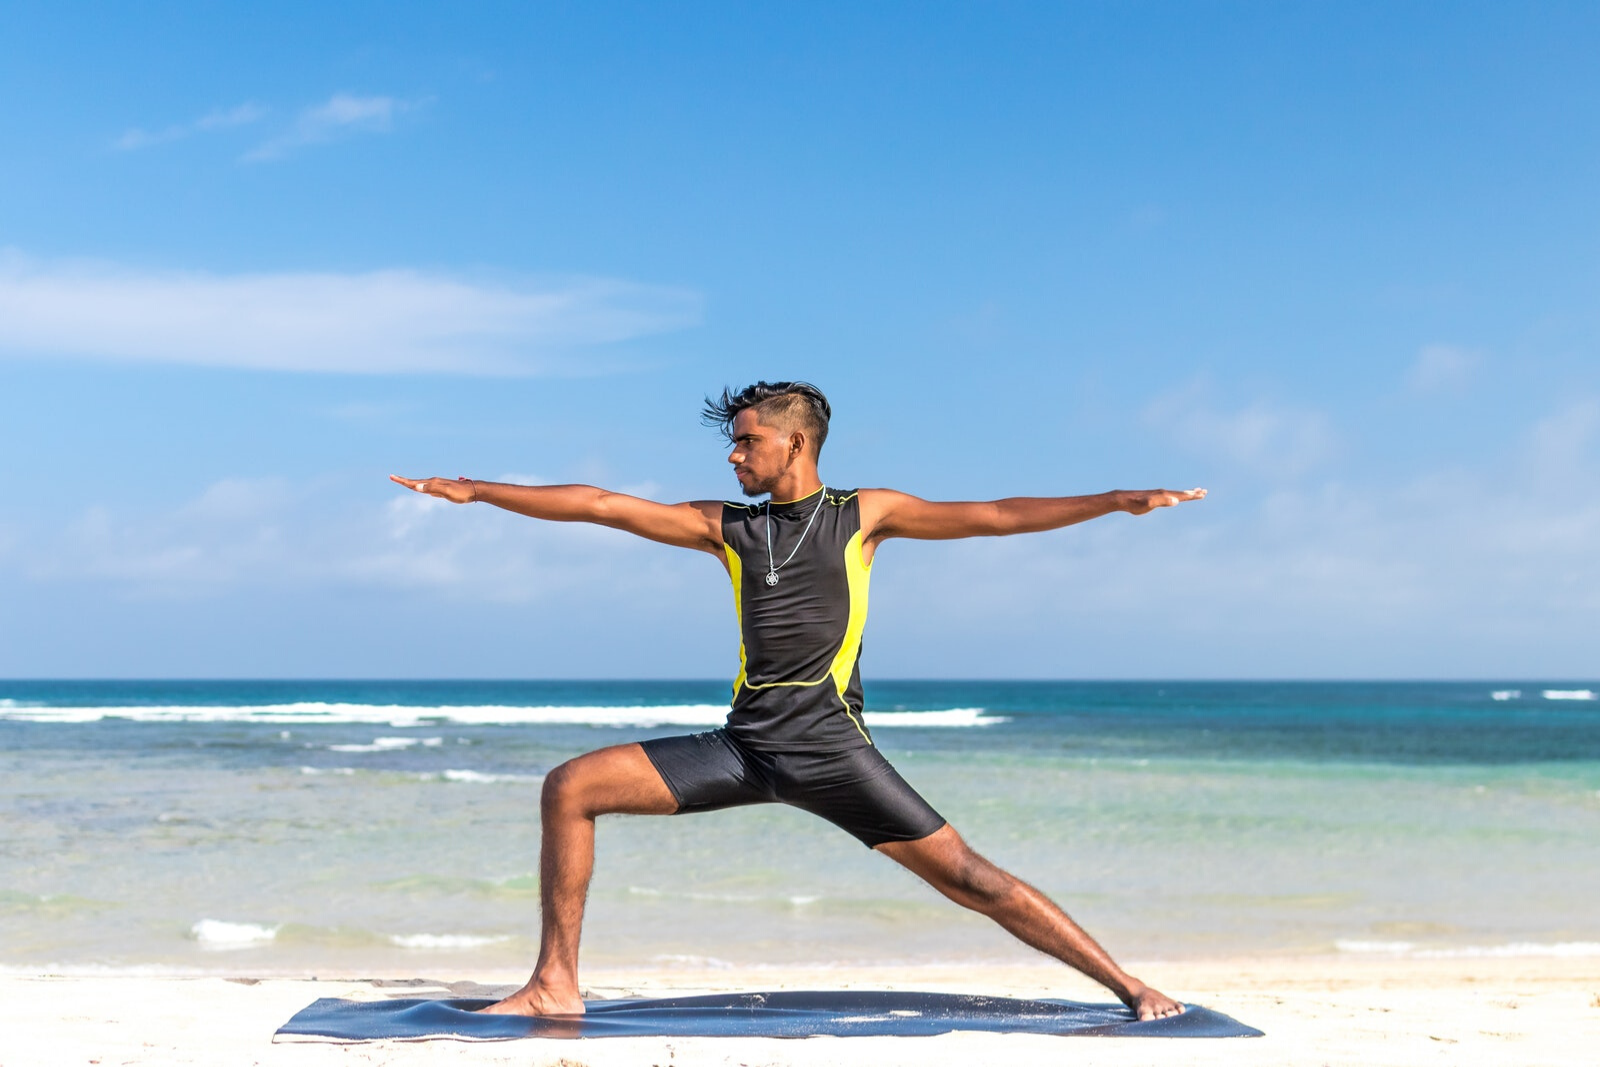 Man Doing Yoga At The Beach | Yoga For Beginners At Home: How To Be A Self-Starter